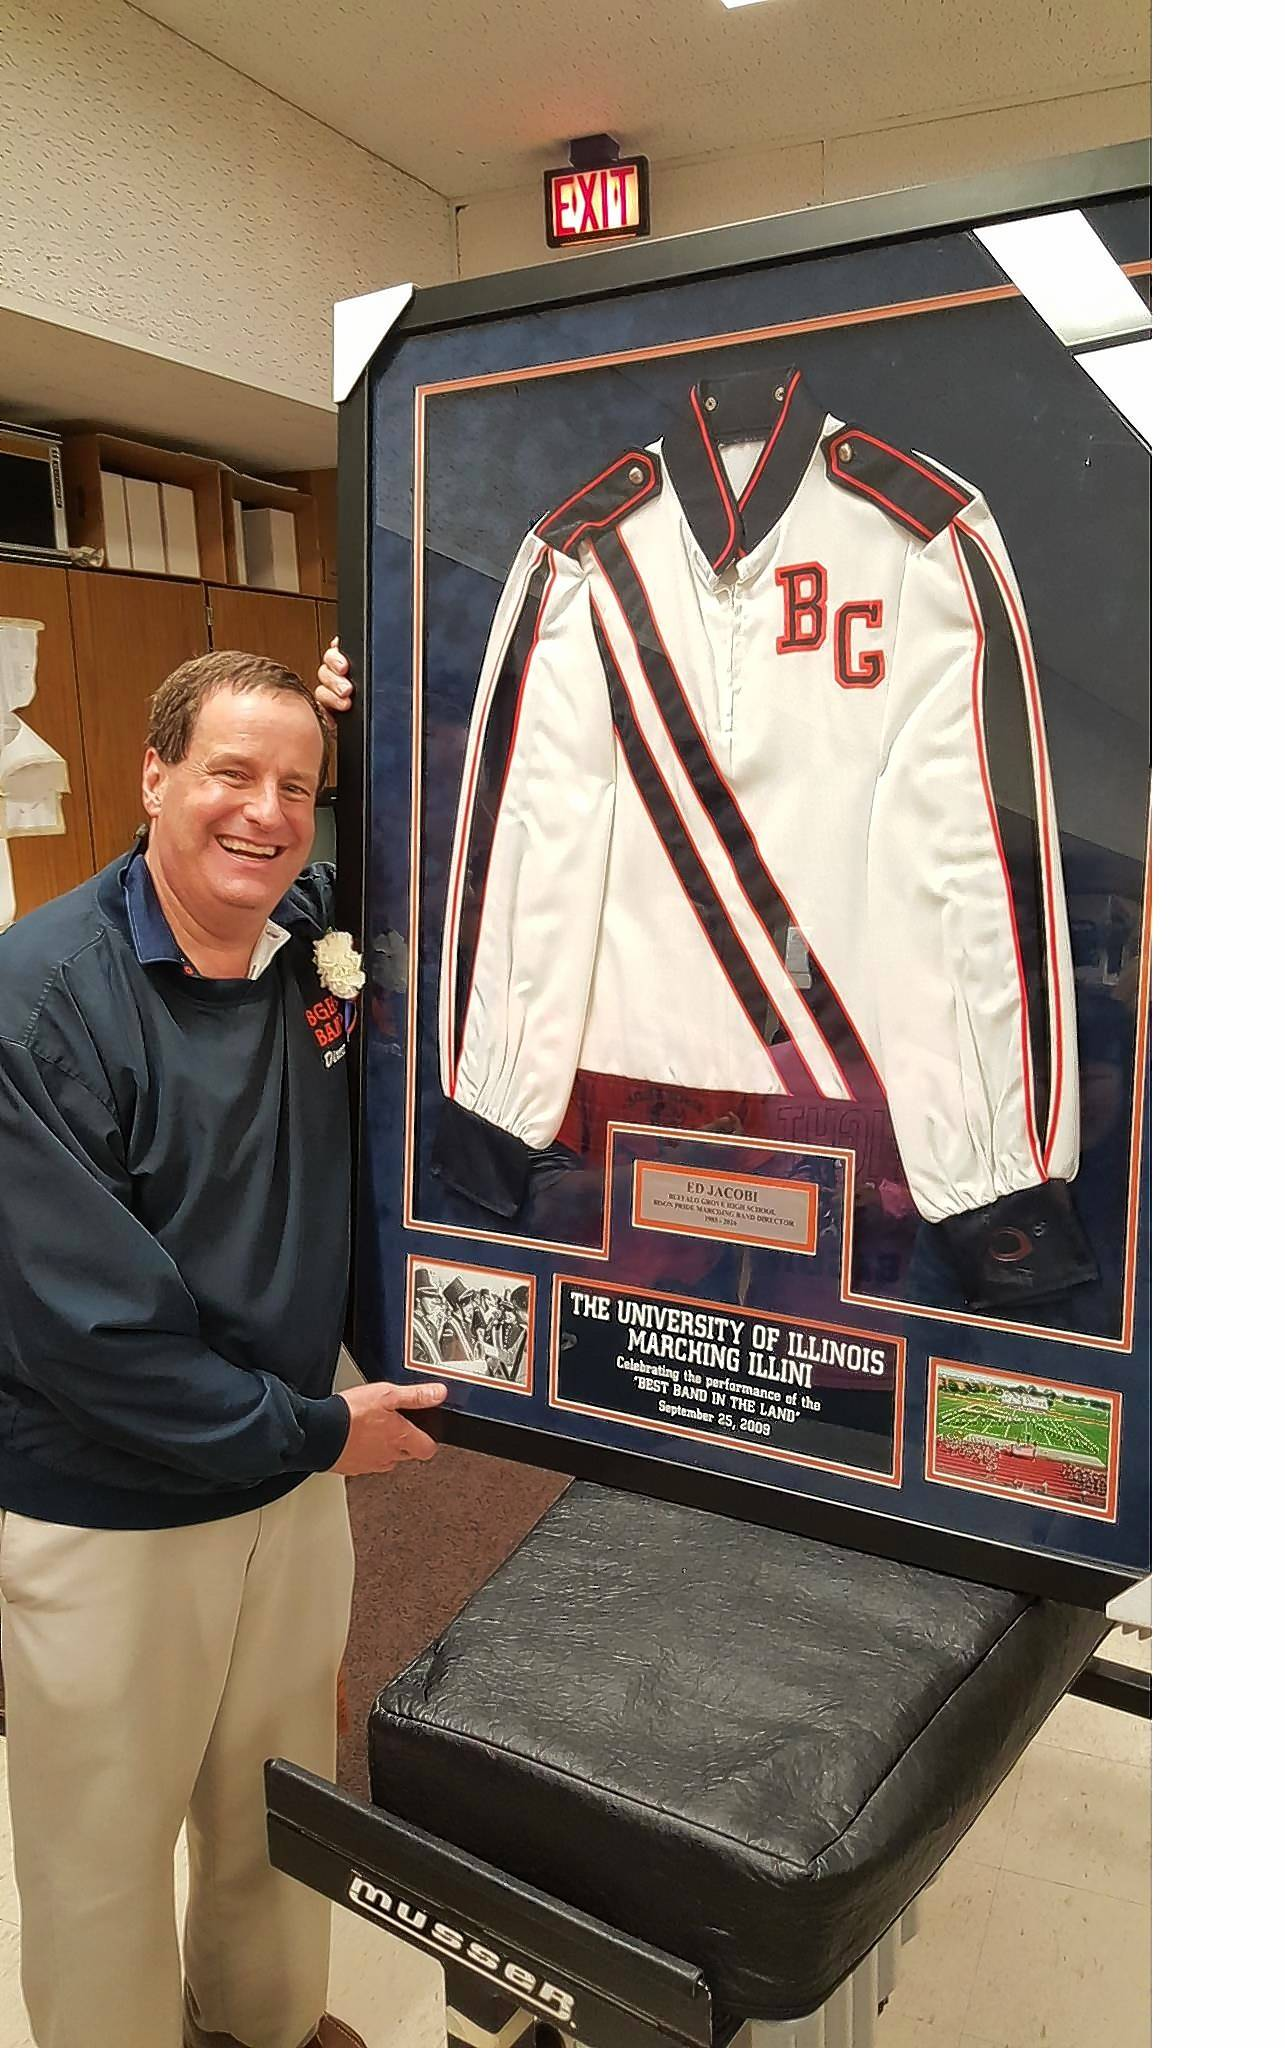 In recognition of his 31 years as director of the Buffalo Grove High School marching band and his ties to University of Illinois' Marching Illini, Ed Jacobi was honored by band members and parents at his last home football game this past fall.